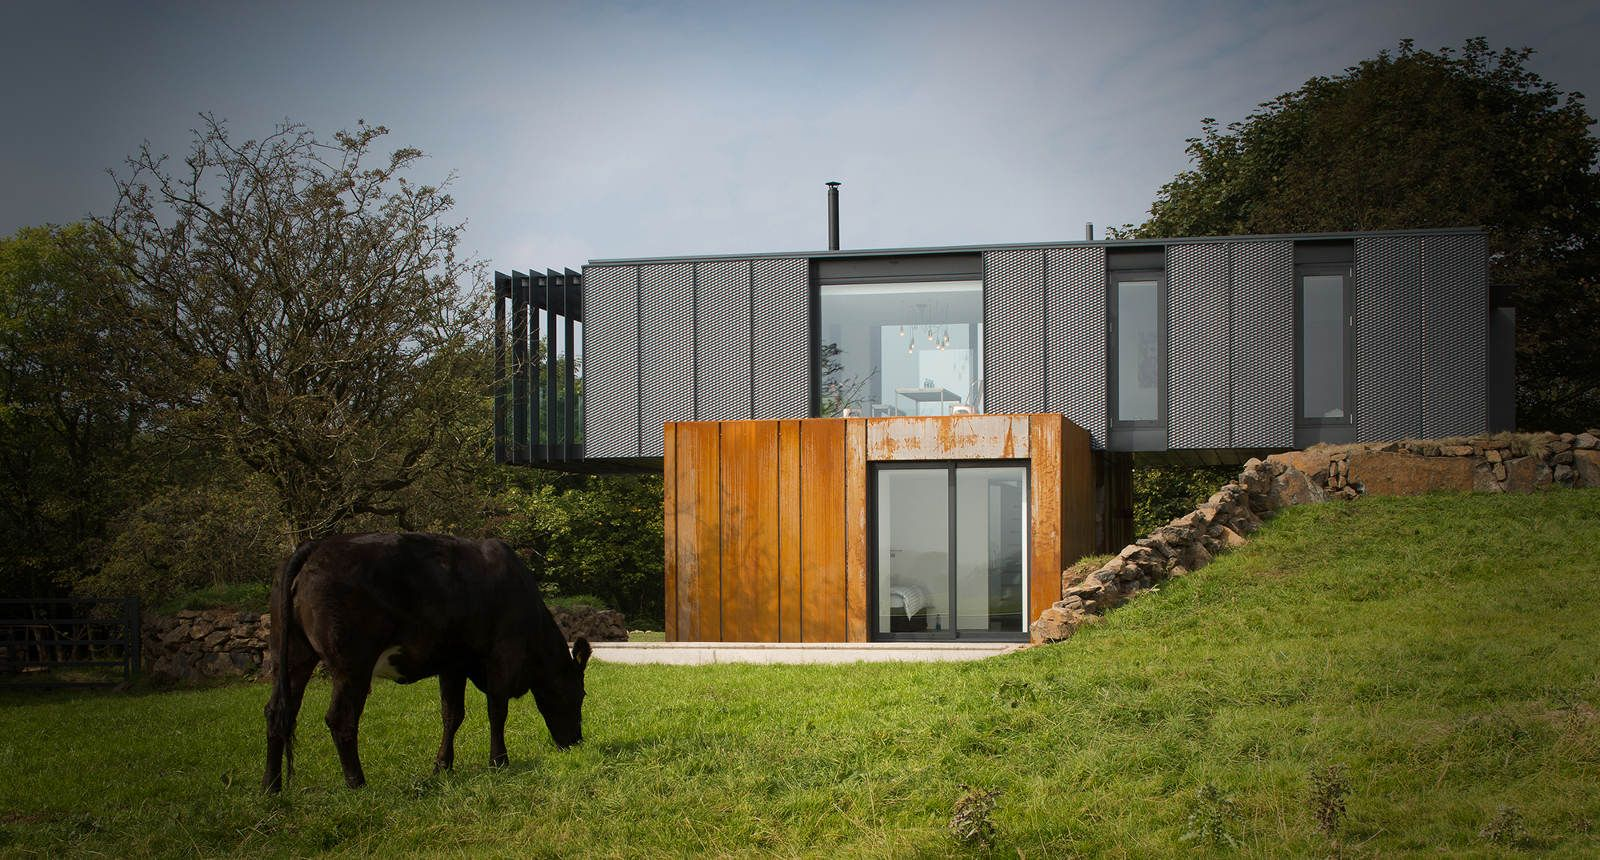 17 Best images about Design on Pinterest House Modern houses